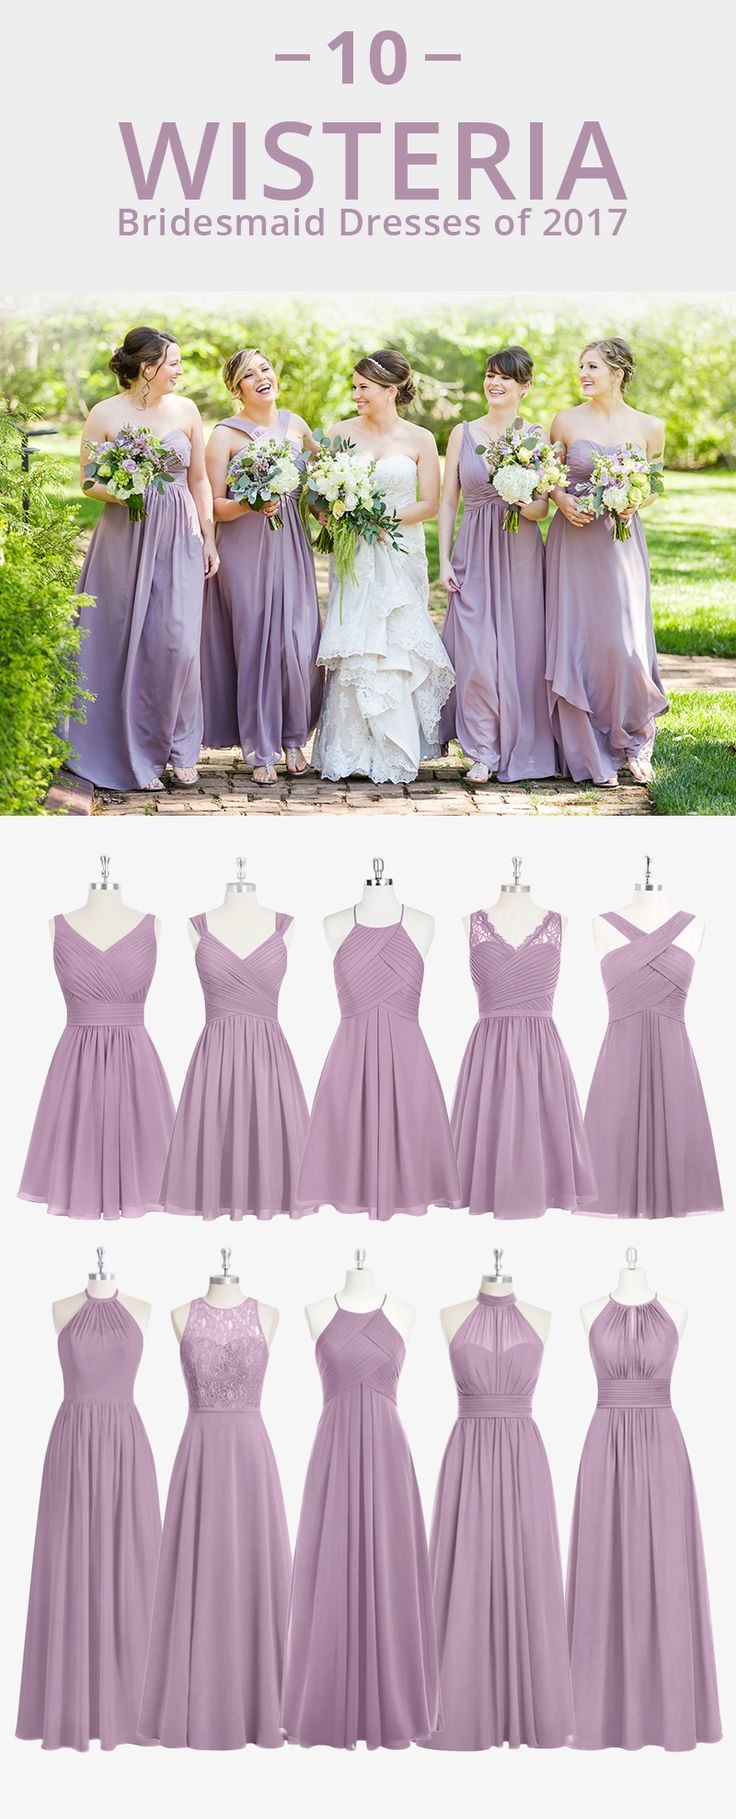 Dress your bridesmaid in this romantic soft purple! Available in sizes 0-30 and free custom sizing! Every woman deserves their dream dress, that fits right while still being budget friendly! Photo by Claire Diana Photography.